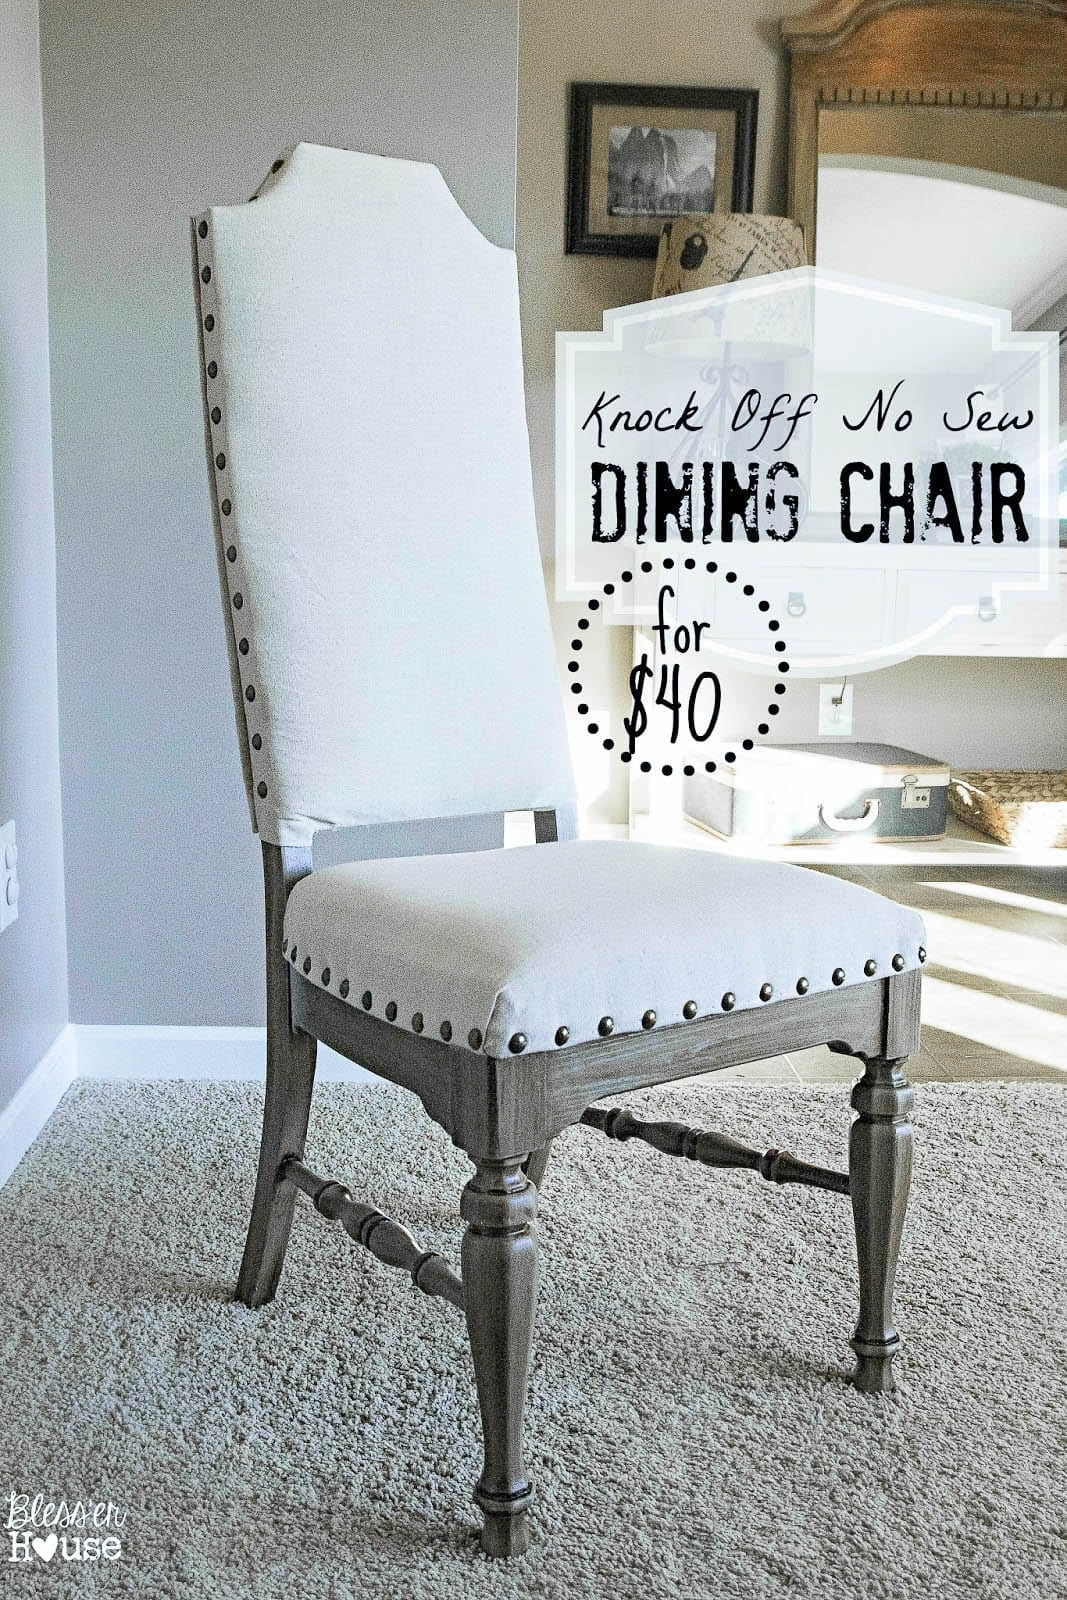 Strange Knock Off No Sew Dining Chairs Blesser House Inzonedesignstudio Interior Chair Design Inzonedesignstudiocom